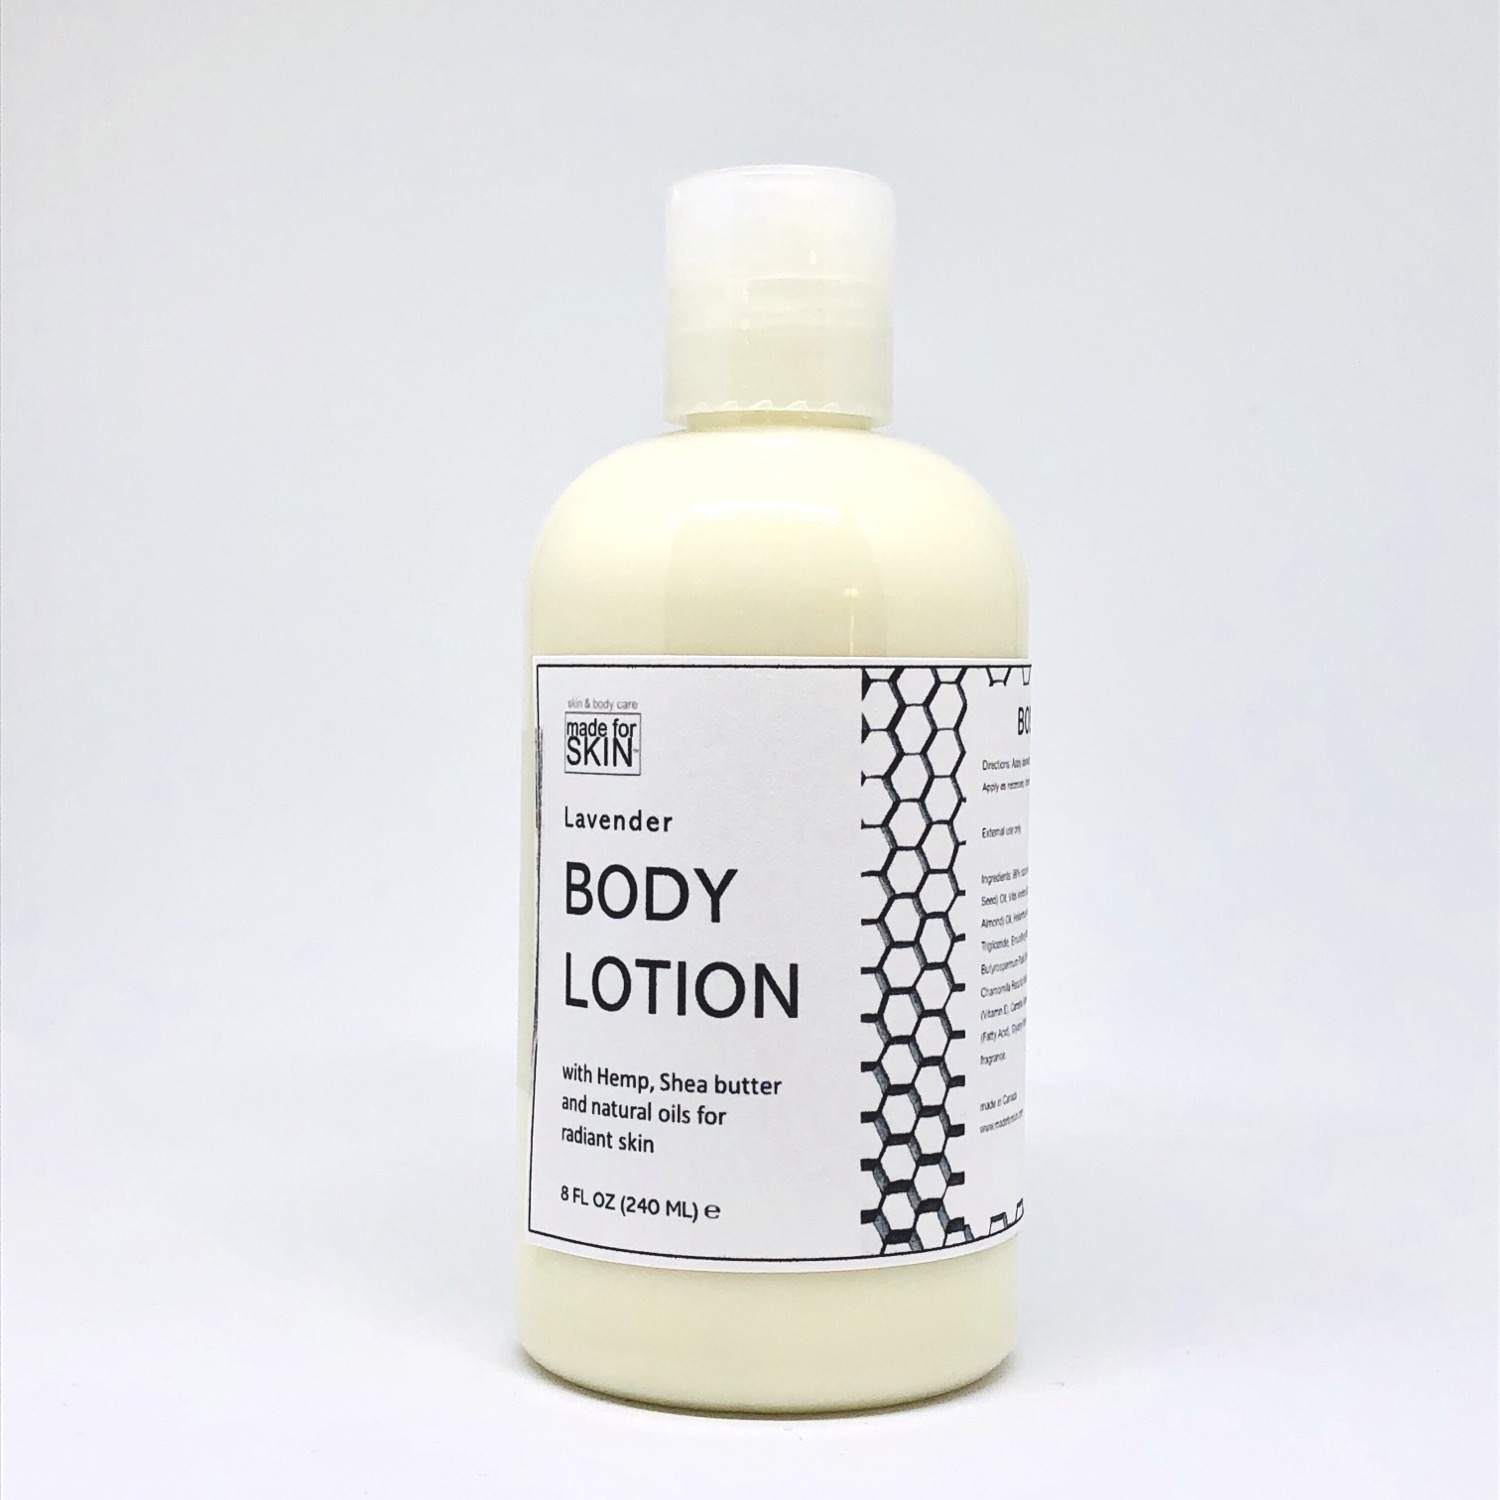 Hemp Lavender Body Lotion | made for SKIN